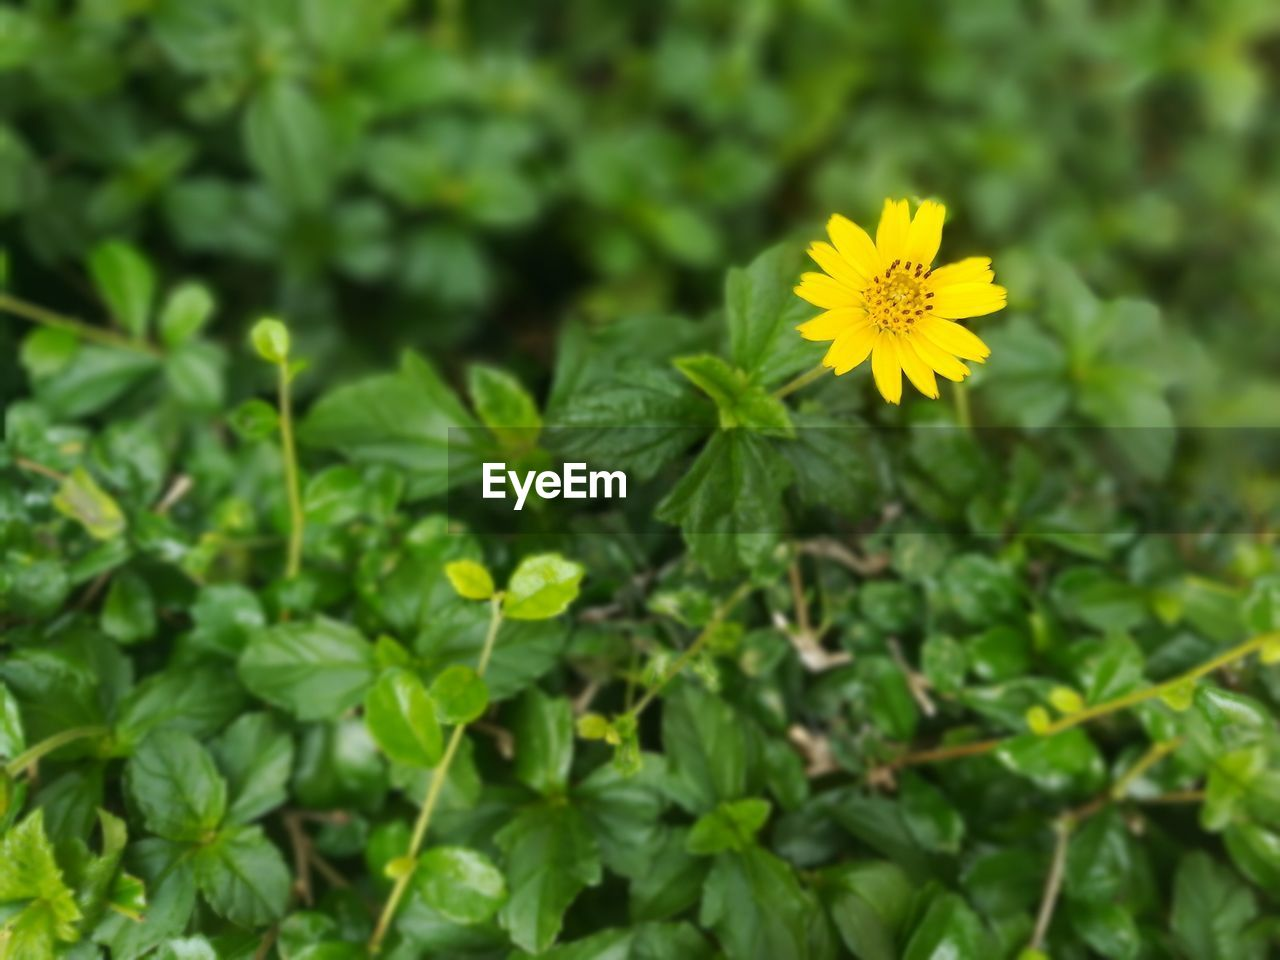 plant, flowering plant, flower, freshness, fragility, beauty in nature, growth, vulnerability, yellow, green color, nature, inflorescence, flower head, close-up, plant part, leaf, petal, selective focus, day, outdoors, no people